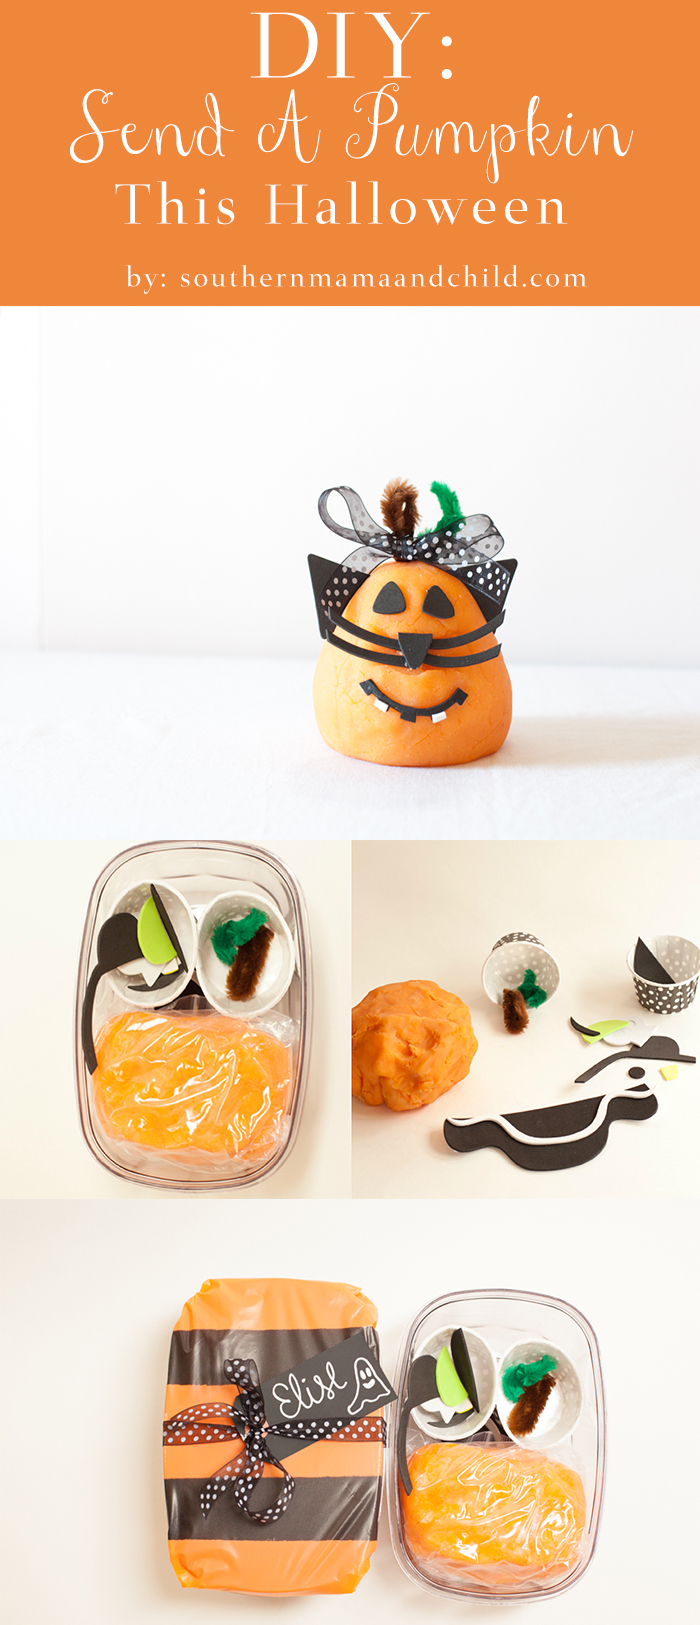 Send-A-Pumpkin-DIY-collage